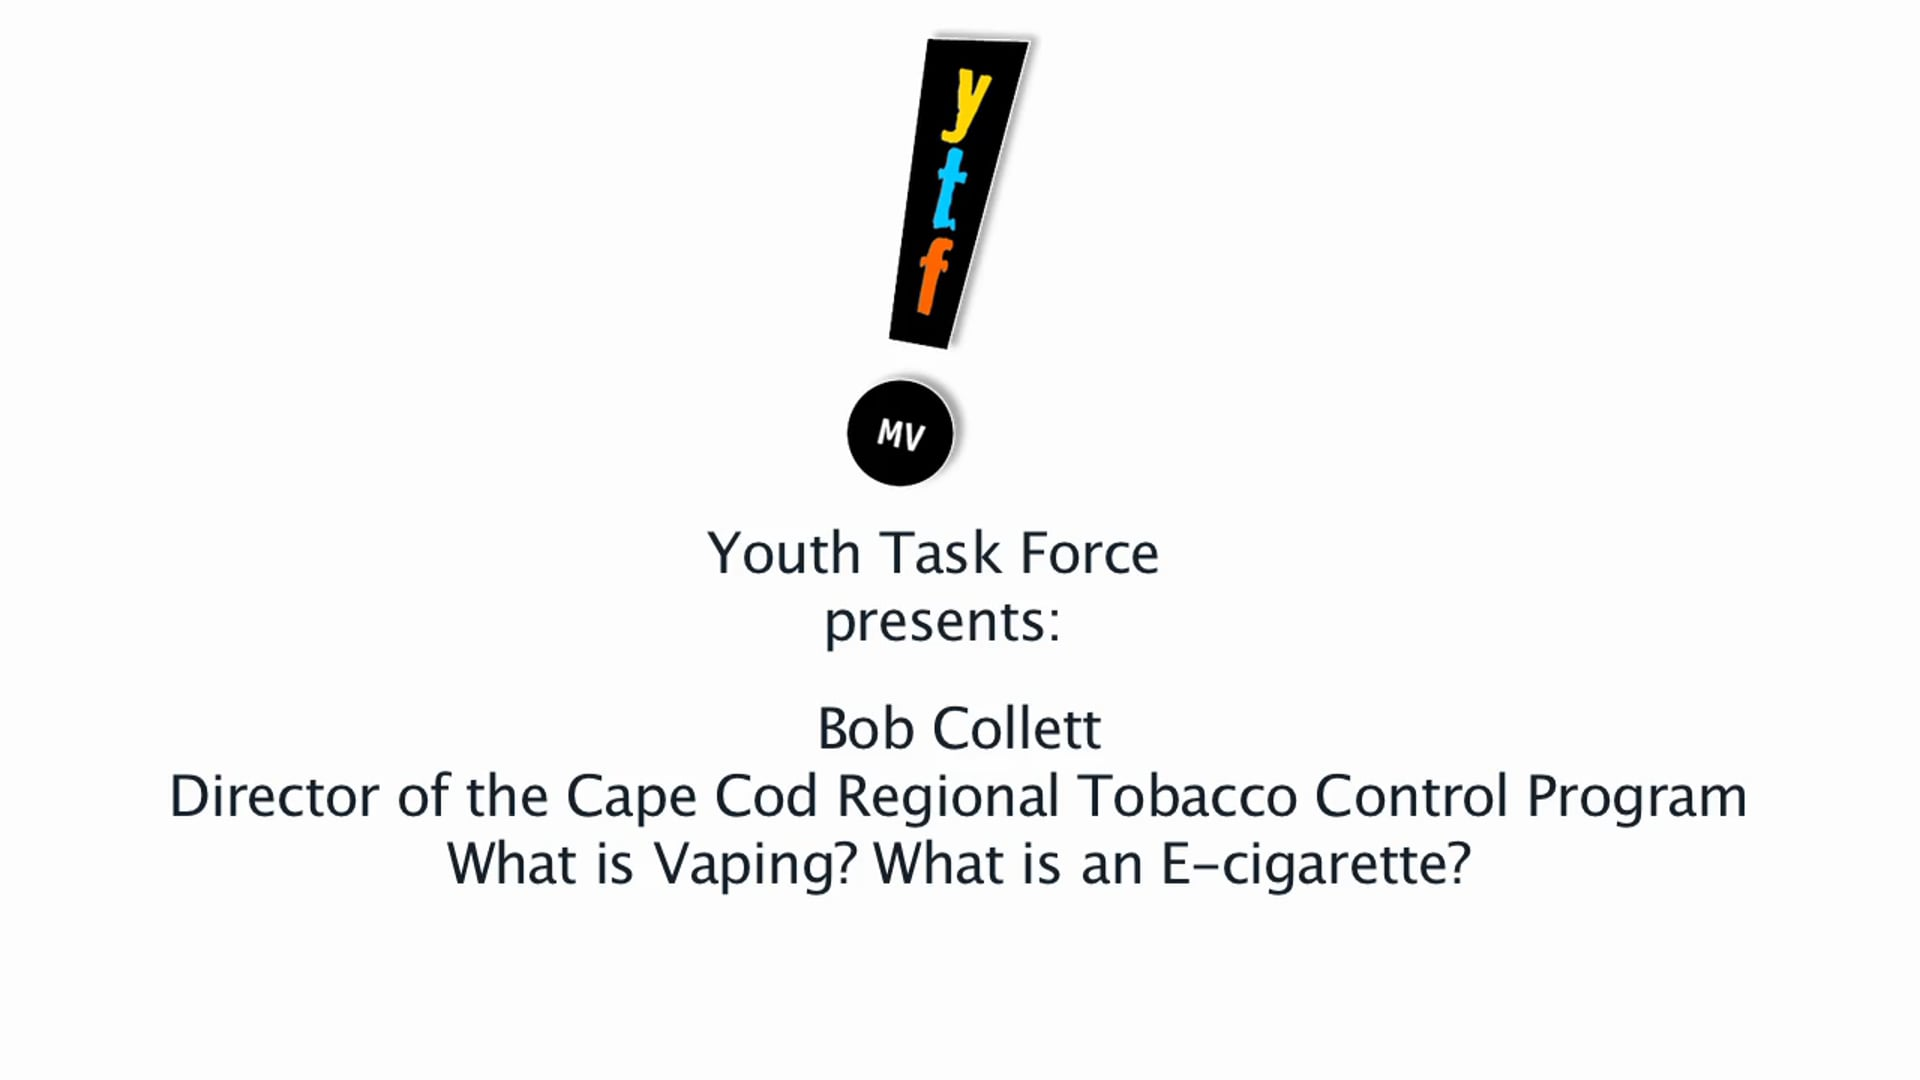 Bob Collett - What is Vaping,  What is an E-cigarette?